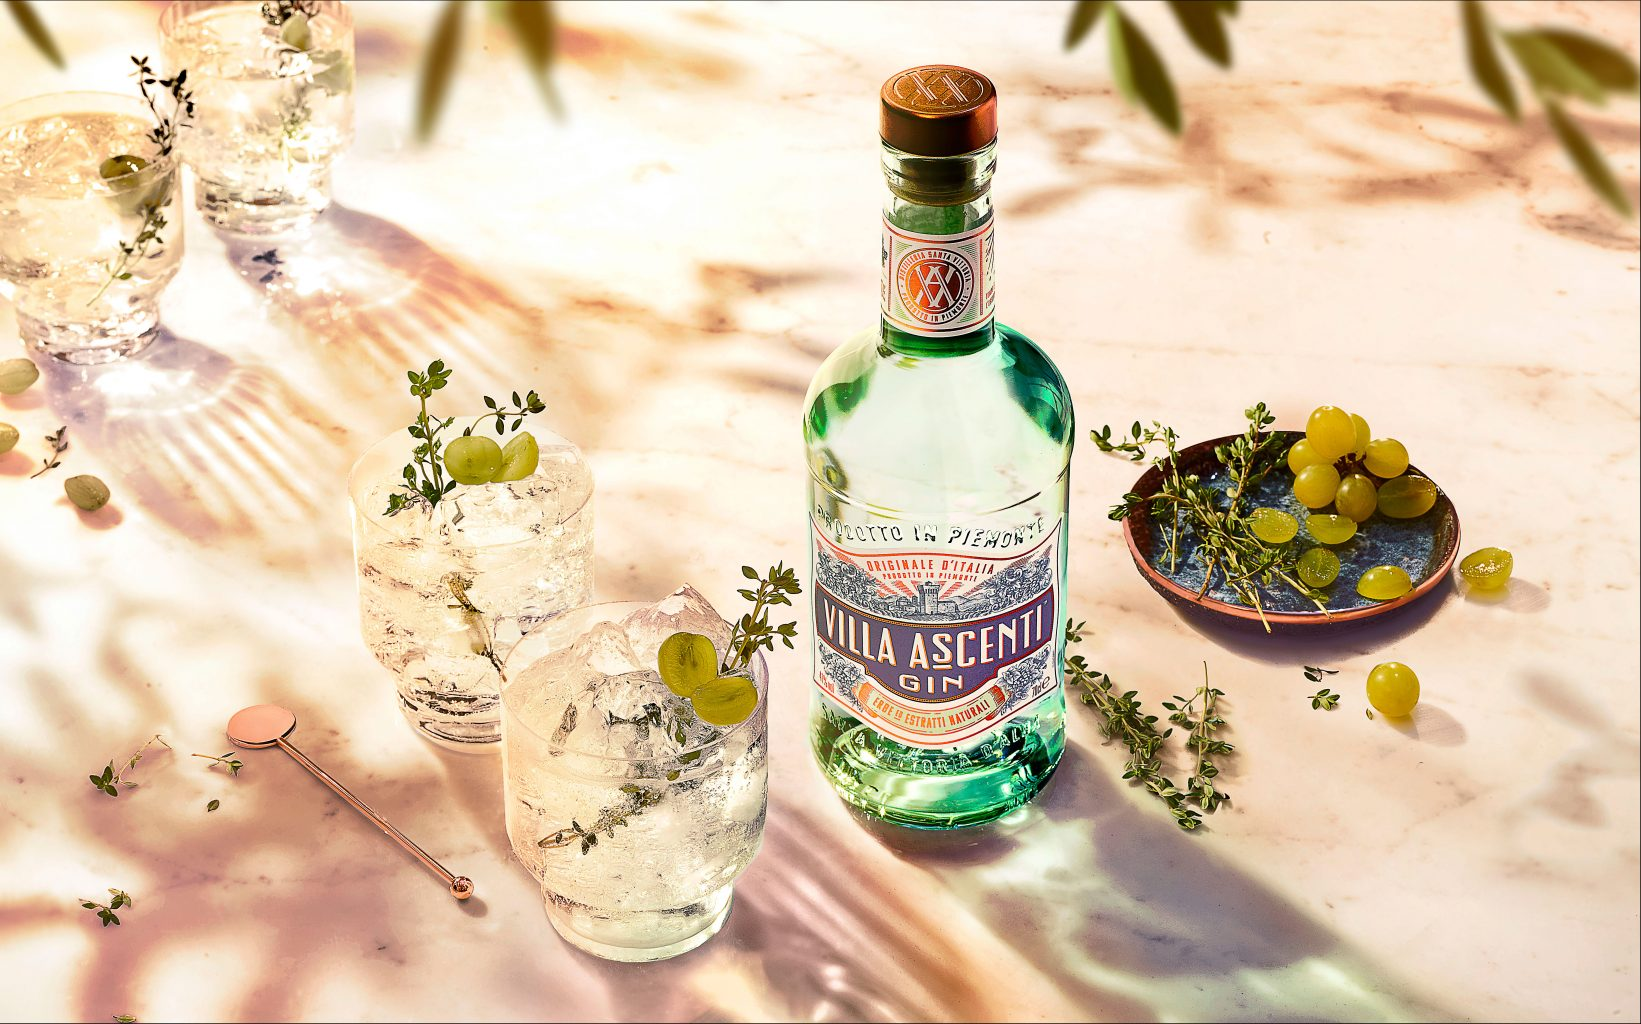 Villa Ascenti and Tonic LANDSCAPE | Villa Ascenti Gin